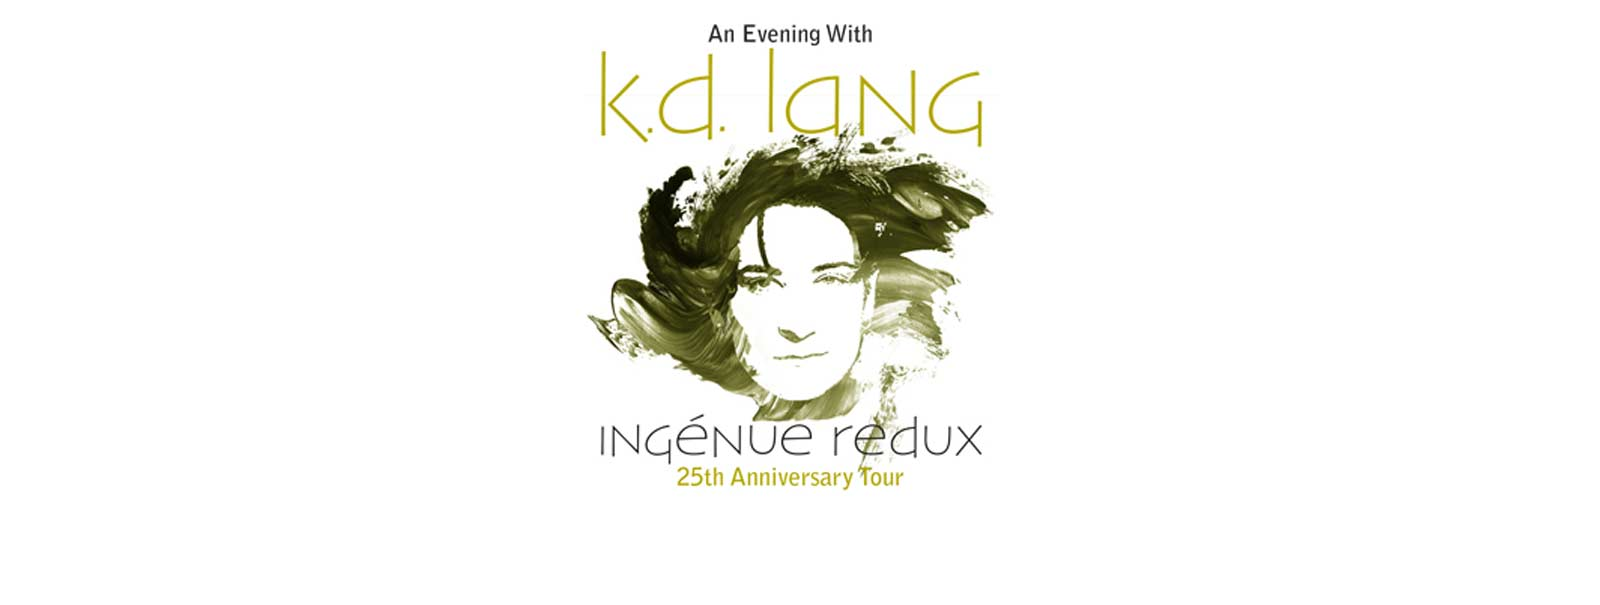 More Info - k.d. lang Ingenue Redux 25th Anniversary Tour